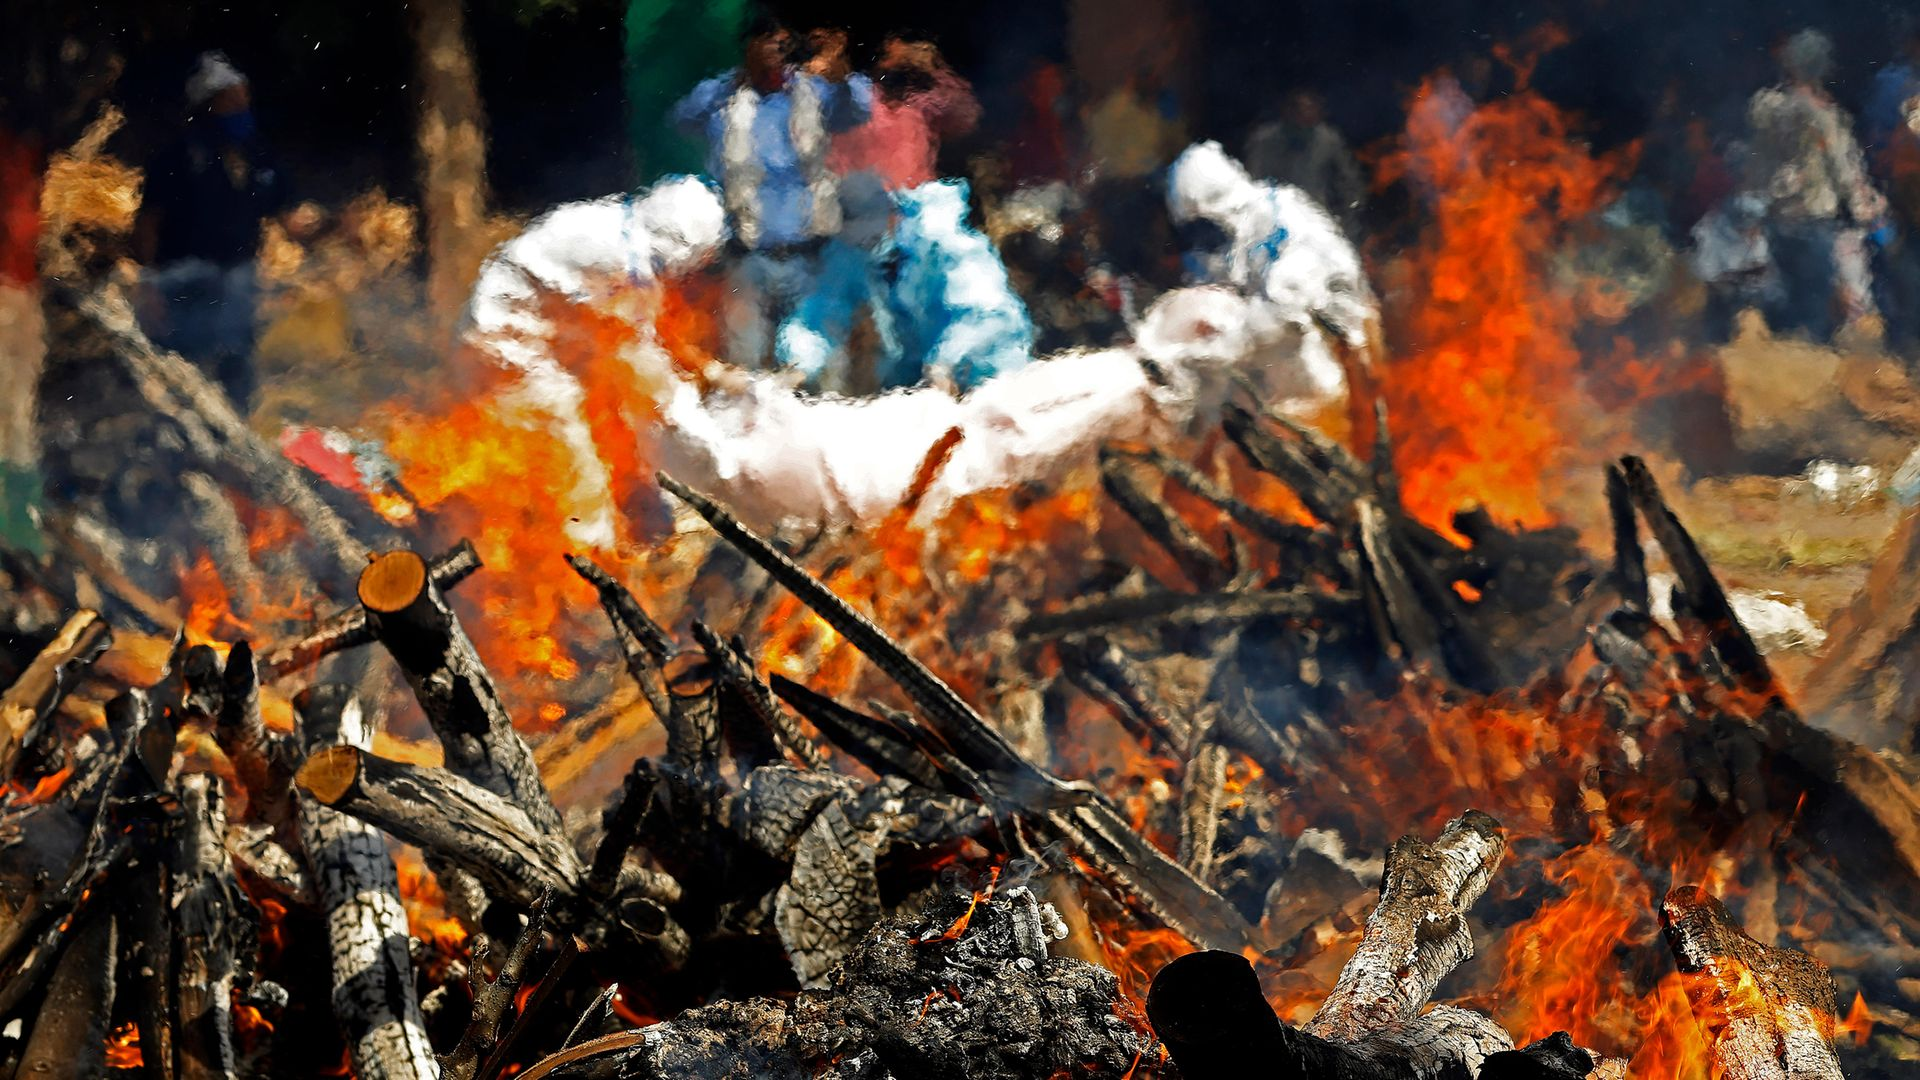 Undertakers wearing protective suits carry a body next to a burning pyre of a Covid victims in Delhi - Credit: SOPA Images/LightRocket via Gett